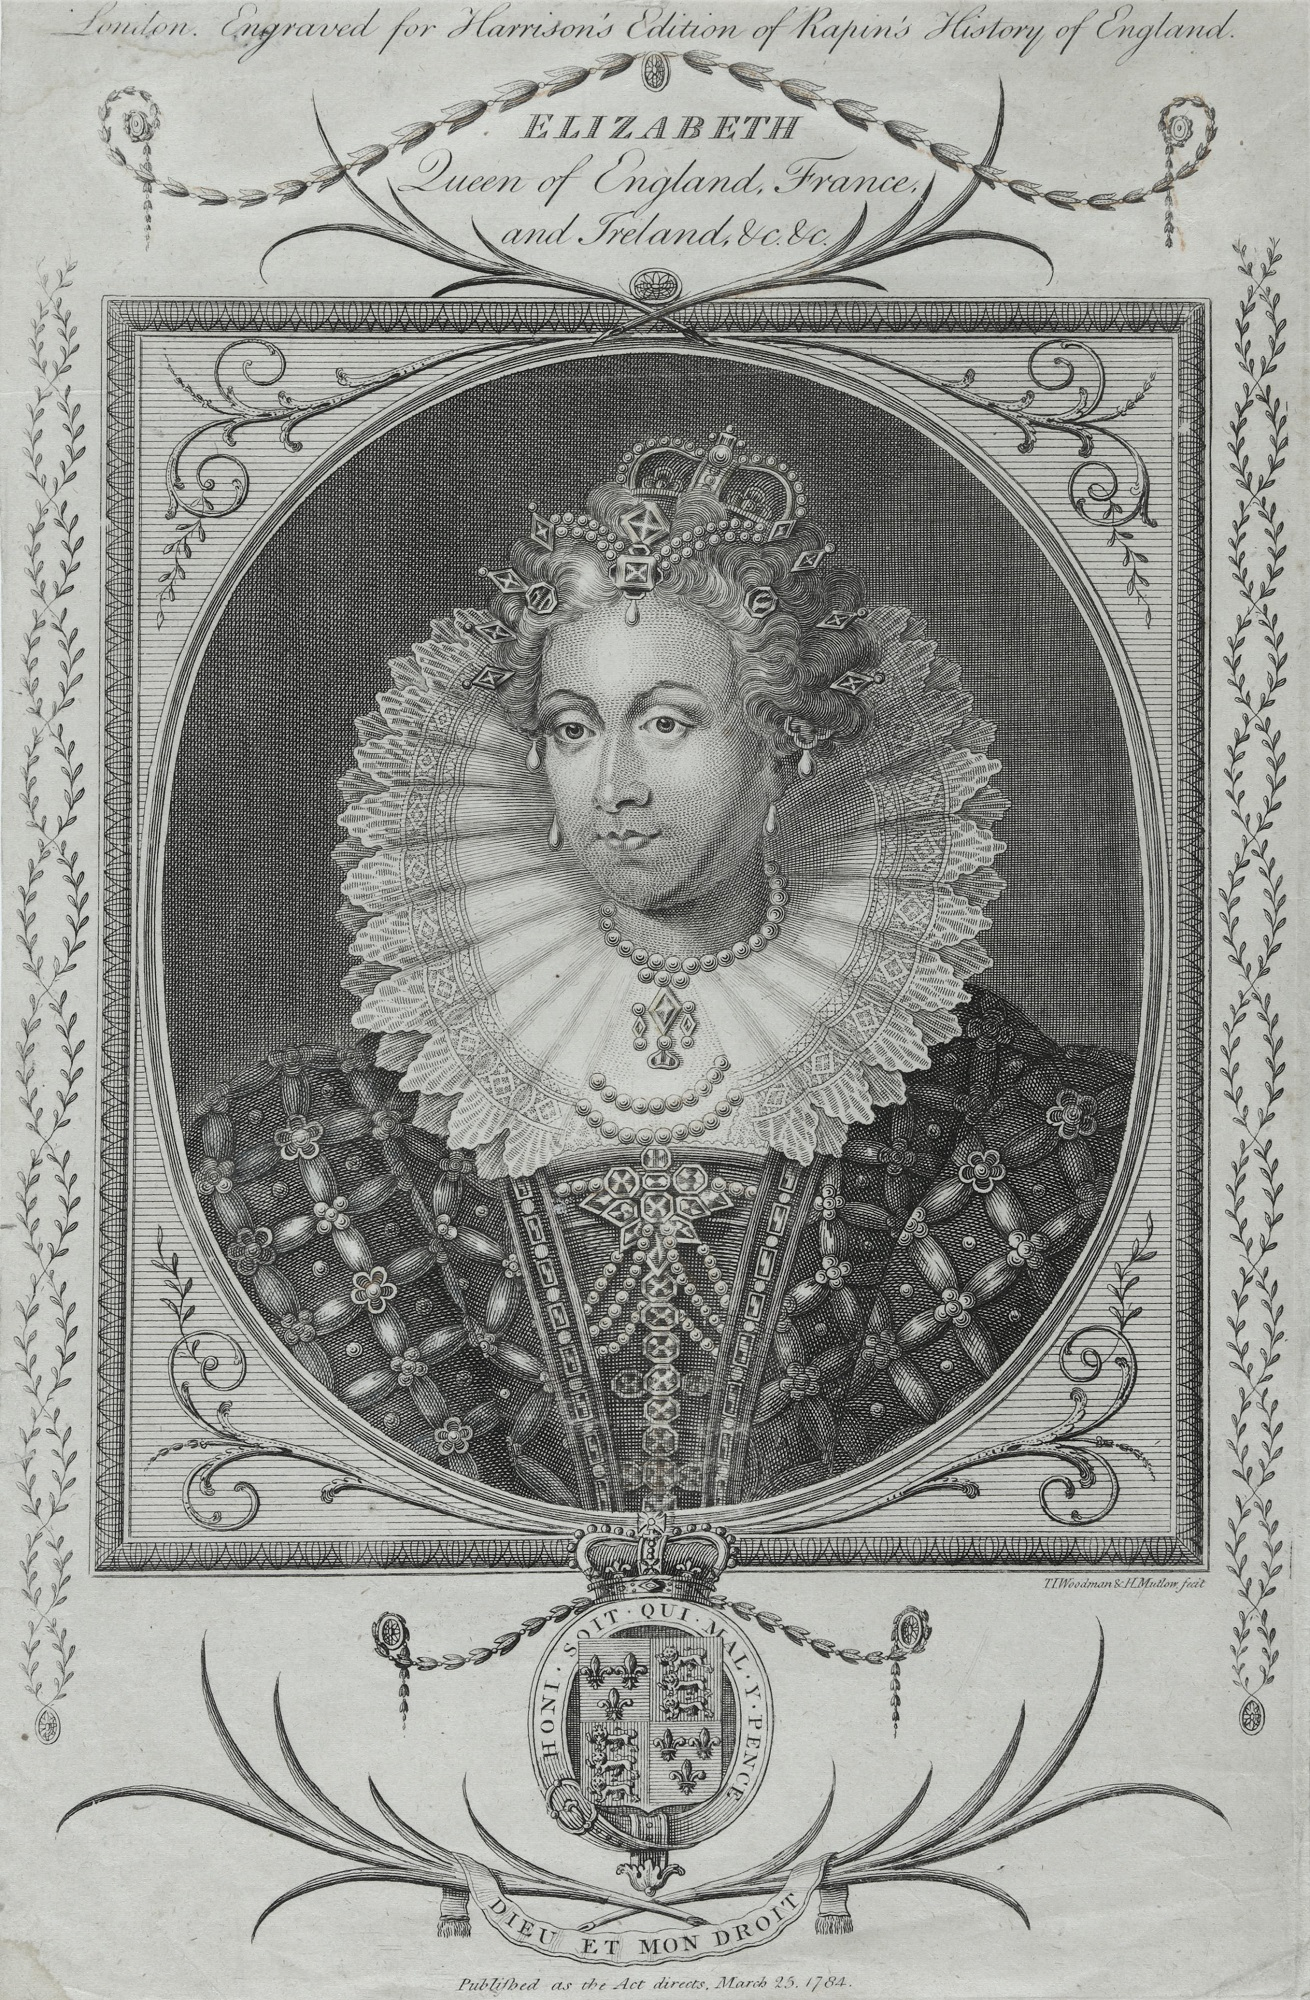 Black and white print of Queen Elizabeth I. Portrait showing a high ruff, in an oval medallion,. set in a square frame, outlined with leaves. The Royal coat of arms is at the bottom of the print. Across top words